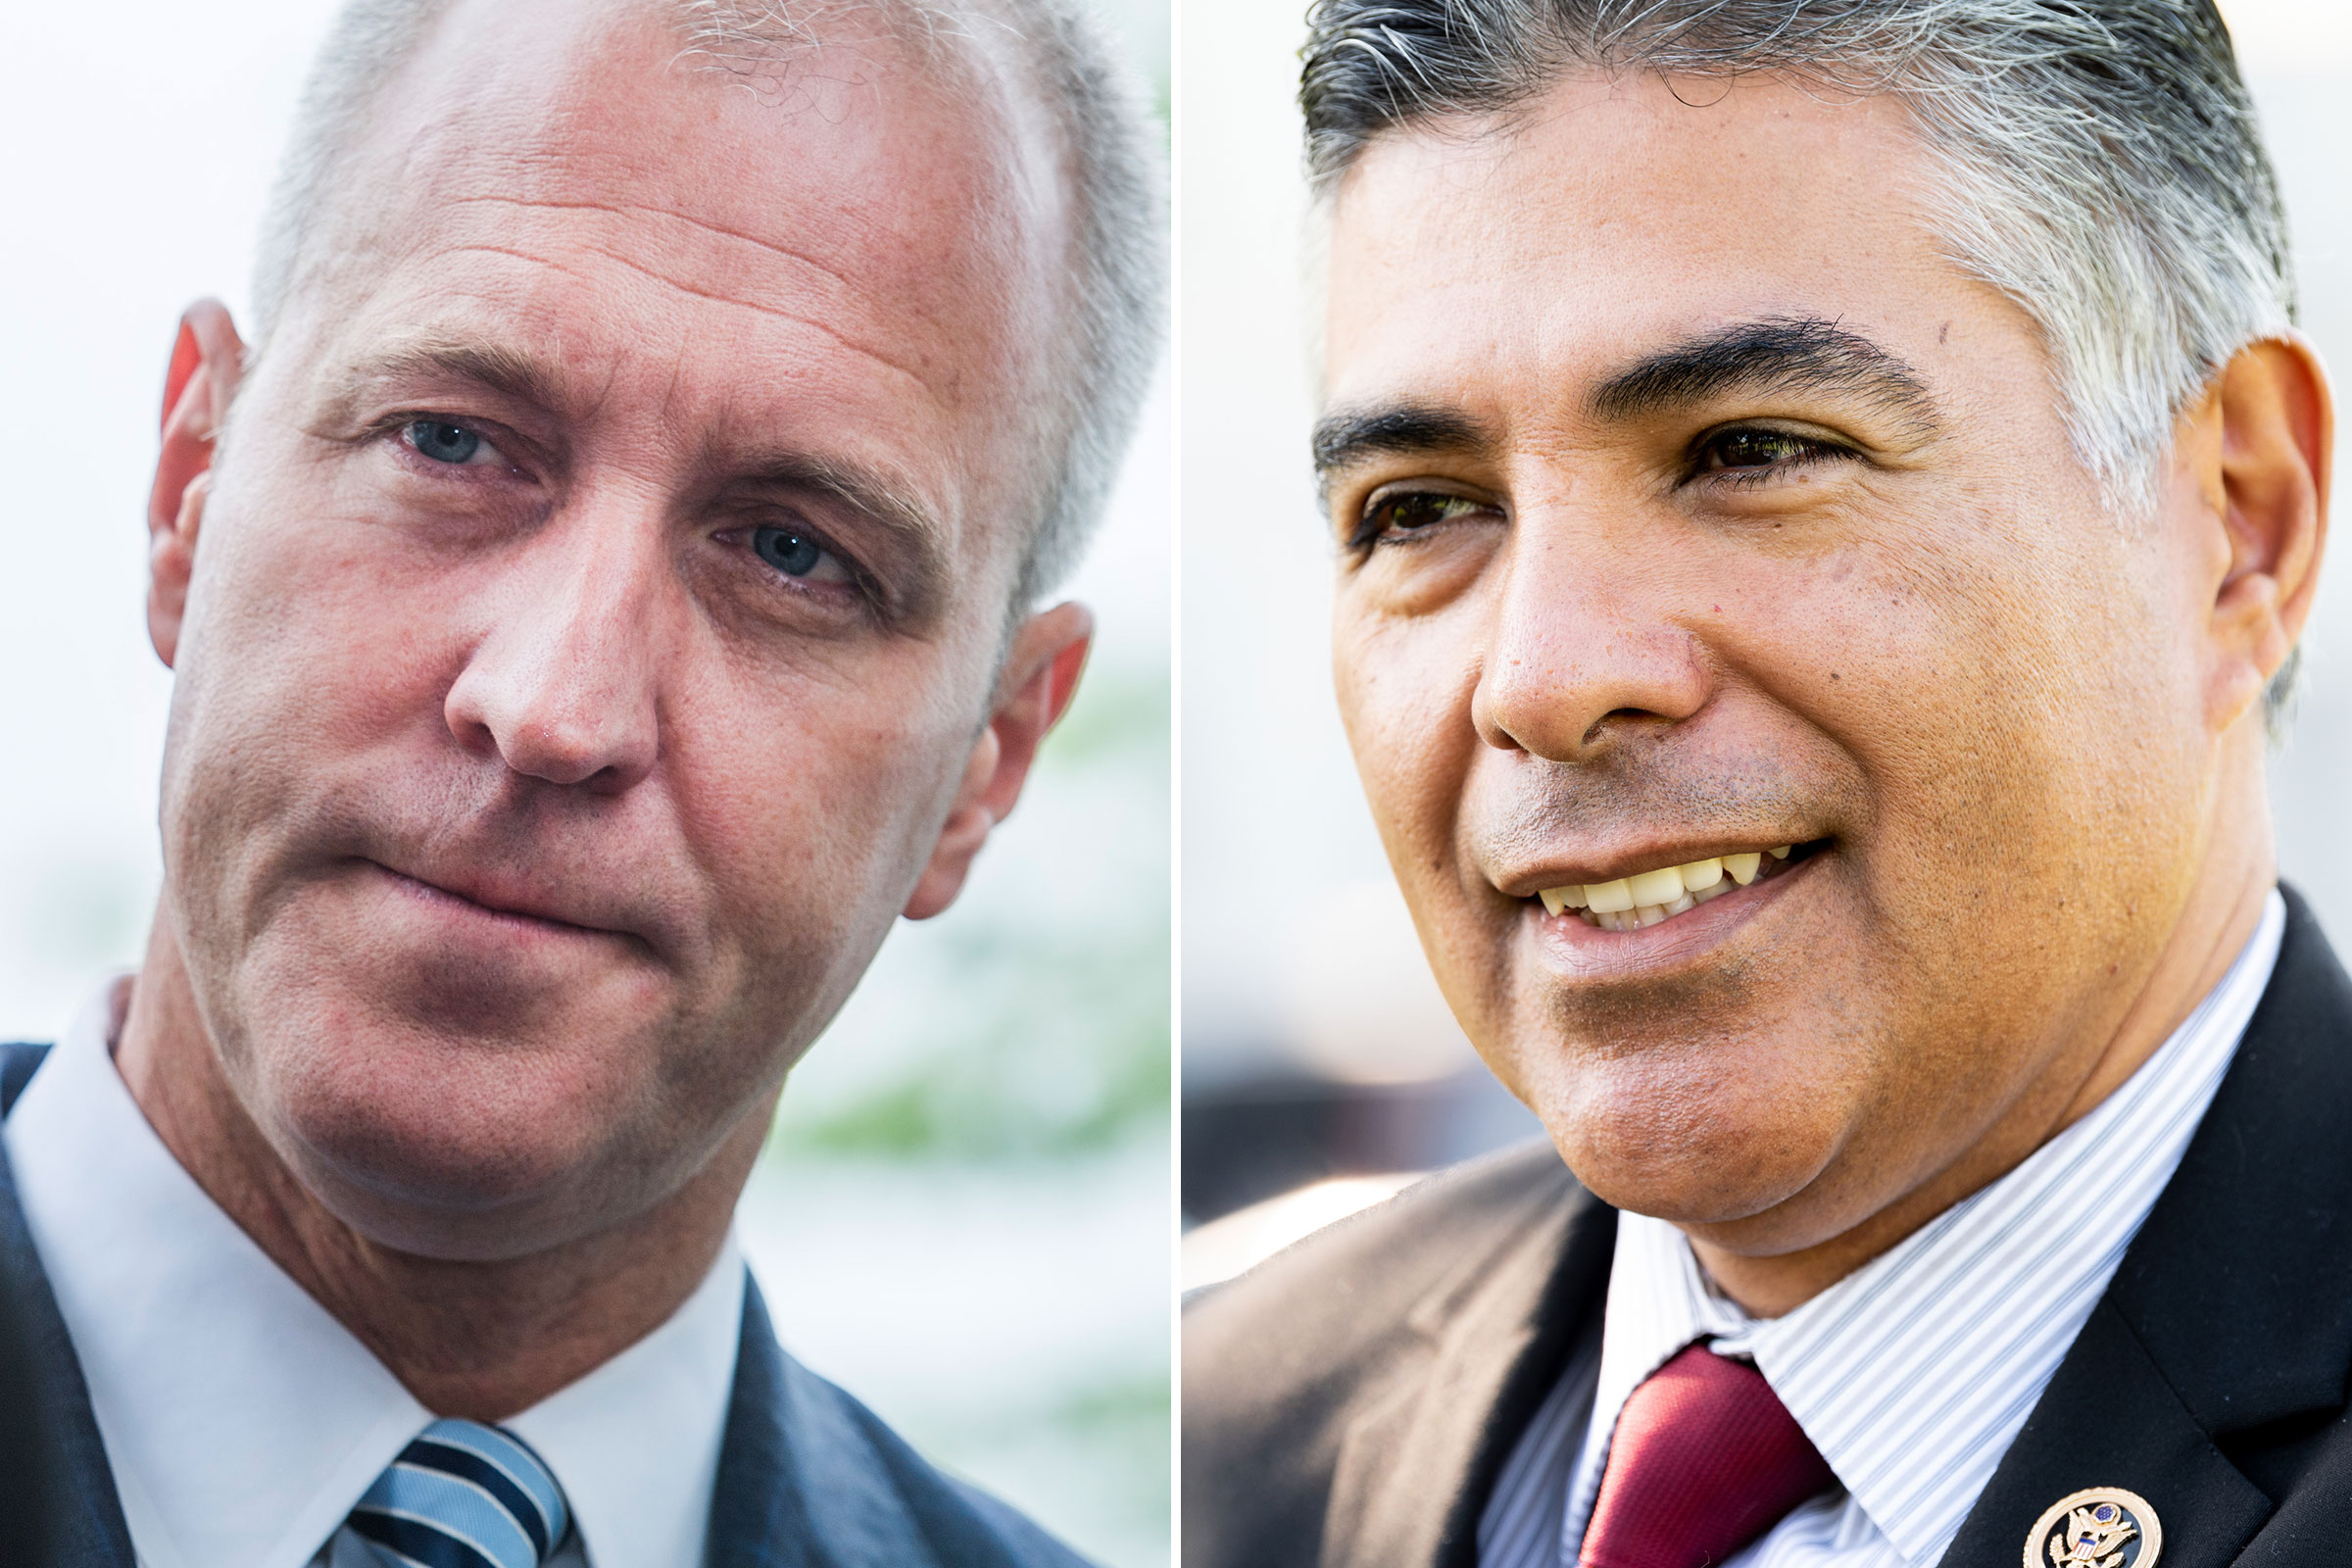 Rep. Sean Patrick Maloney outside the Capitol in Washington on June 13, 2019; Rep. Tony Cardenas outside the Capitol on July 15, 2019